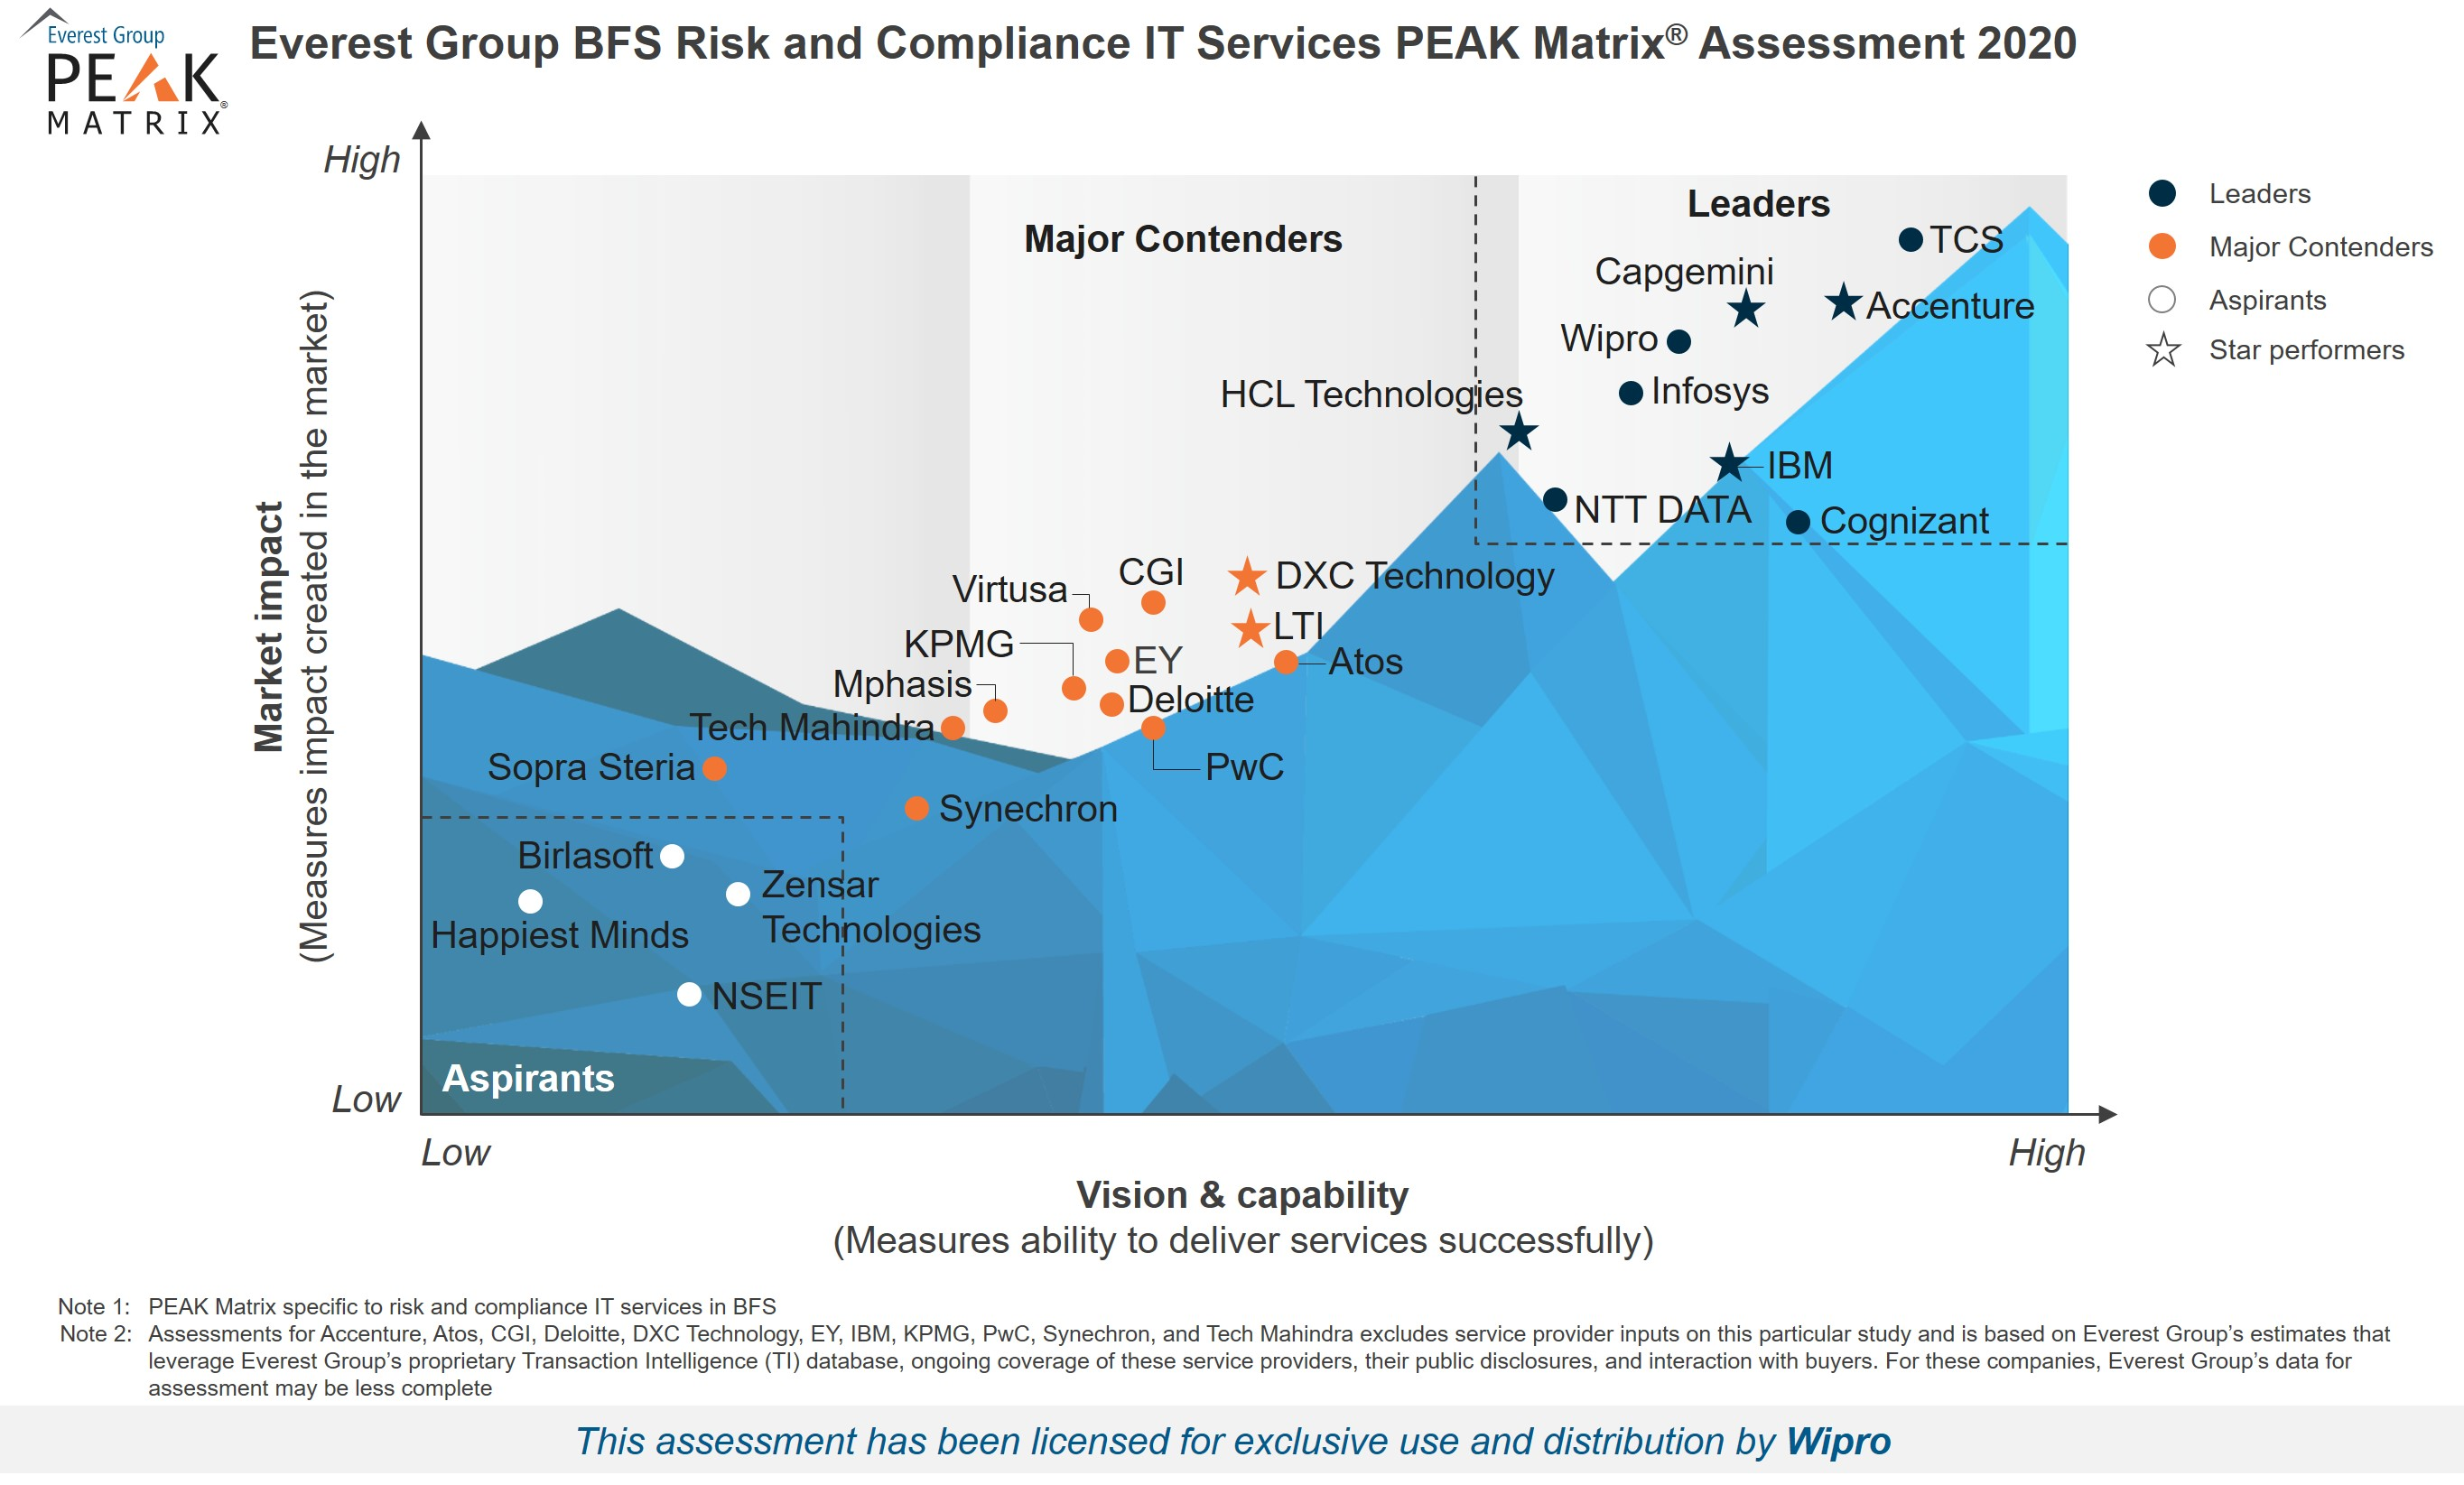 Wipro positioned as a Leader in BFS Risk and Compliance IT Services PEAK Matrix ® Assessment 2020